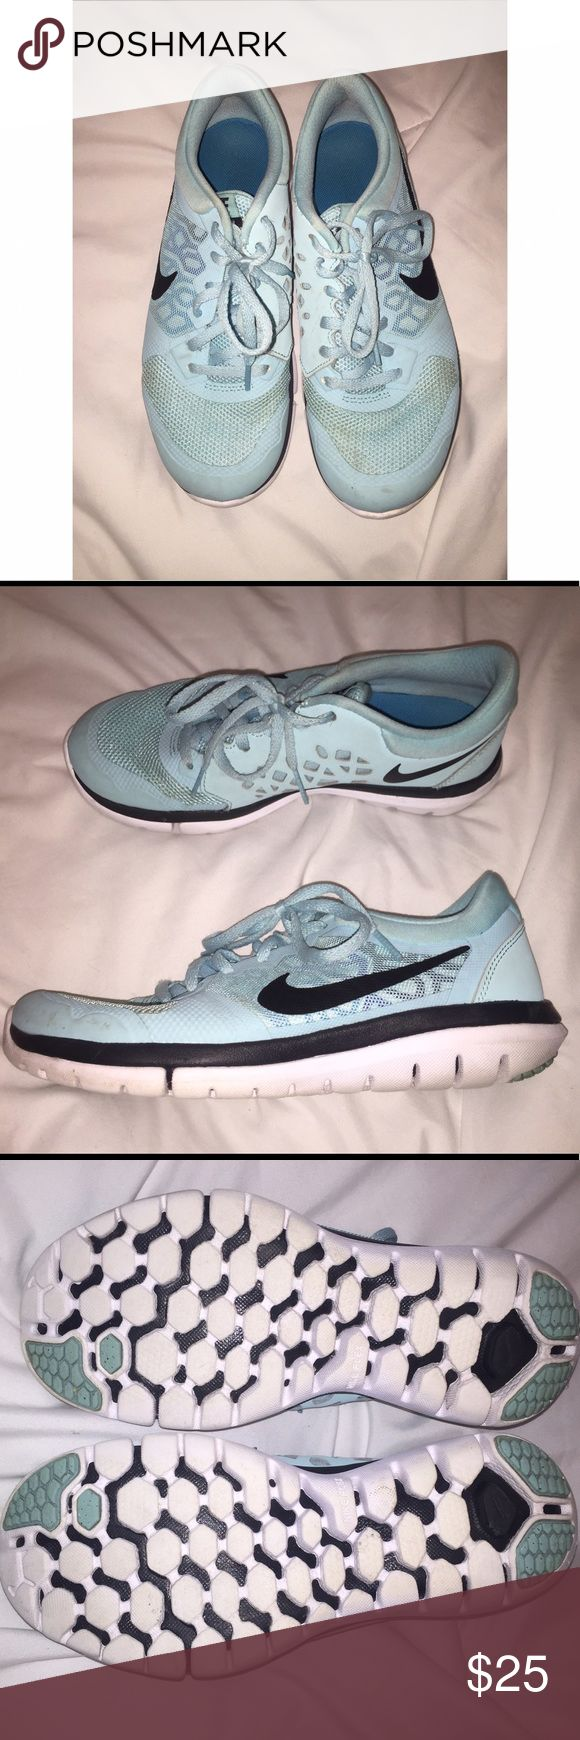 EUC Nike Tiffany Blue Flex Shoes SZ 7 Highly sought after Tiffany Blue Nike Flex running shoes! Slight wear, still have tons of life left! Never even broke them in. Nike Shoes Athletic Shoes